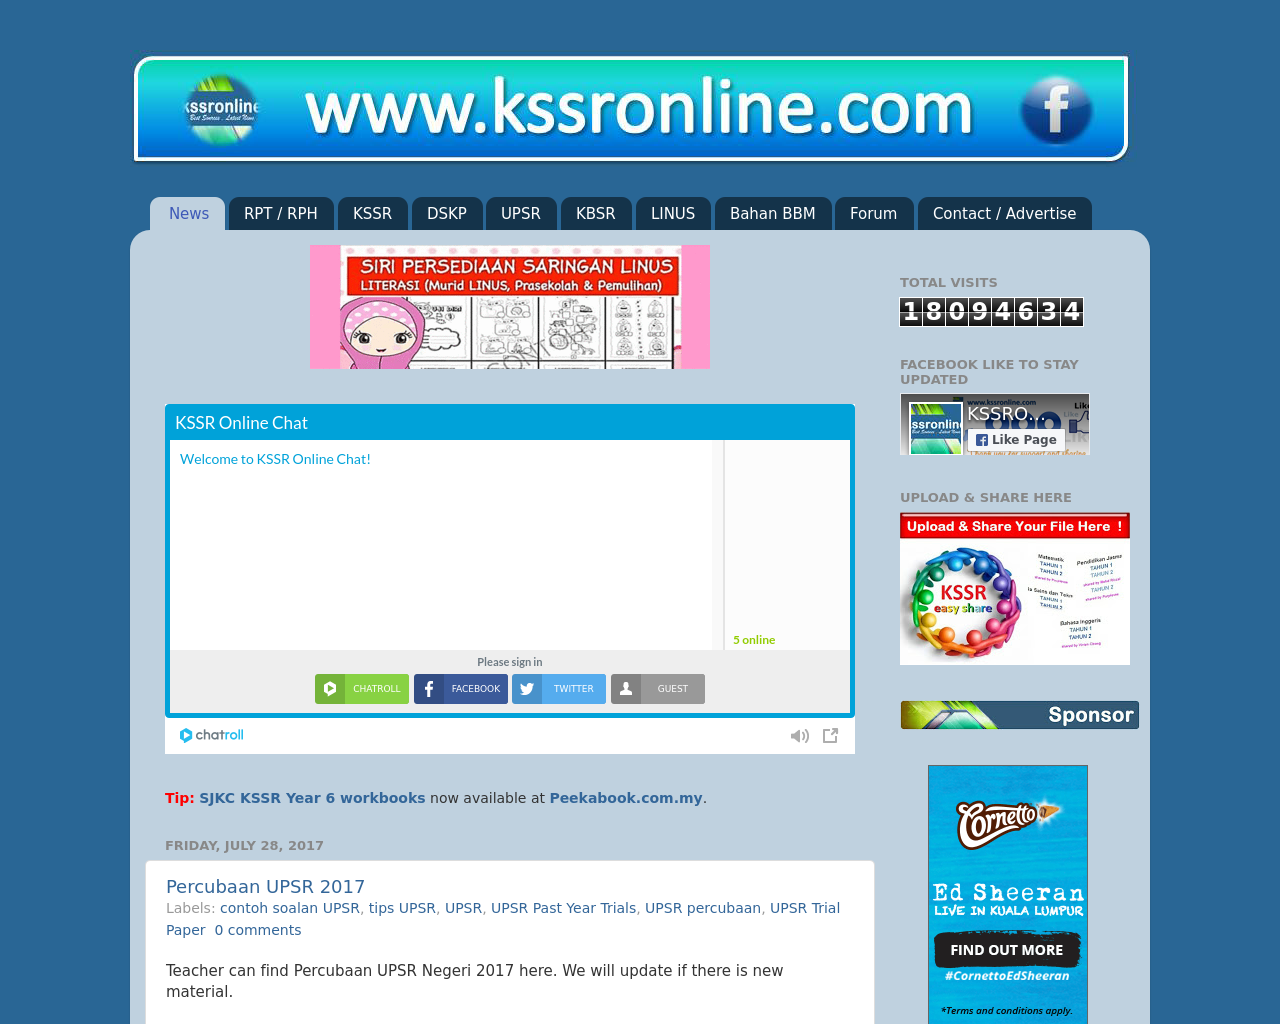 KSSR-Online-Advertising-Reviews-Pricing